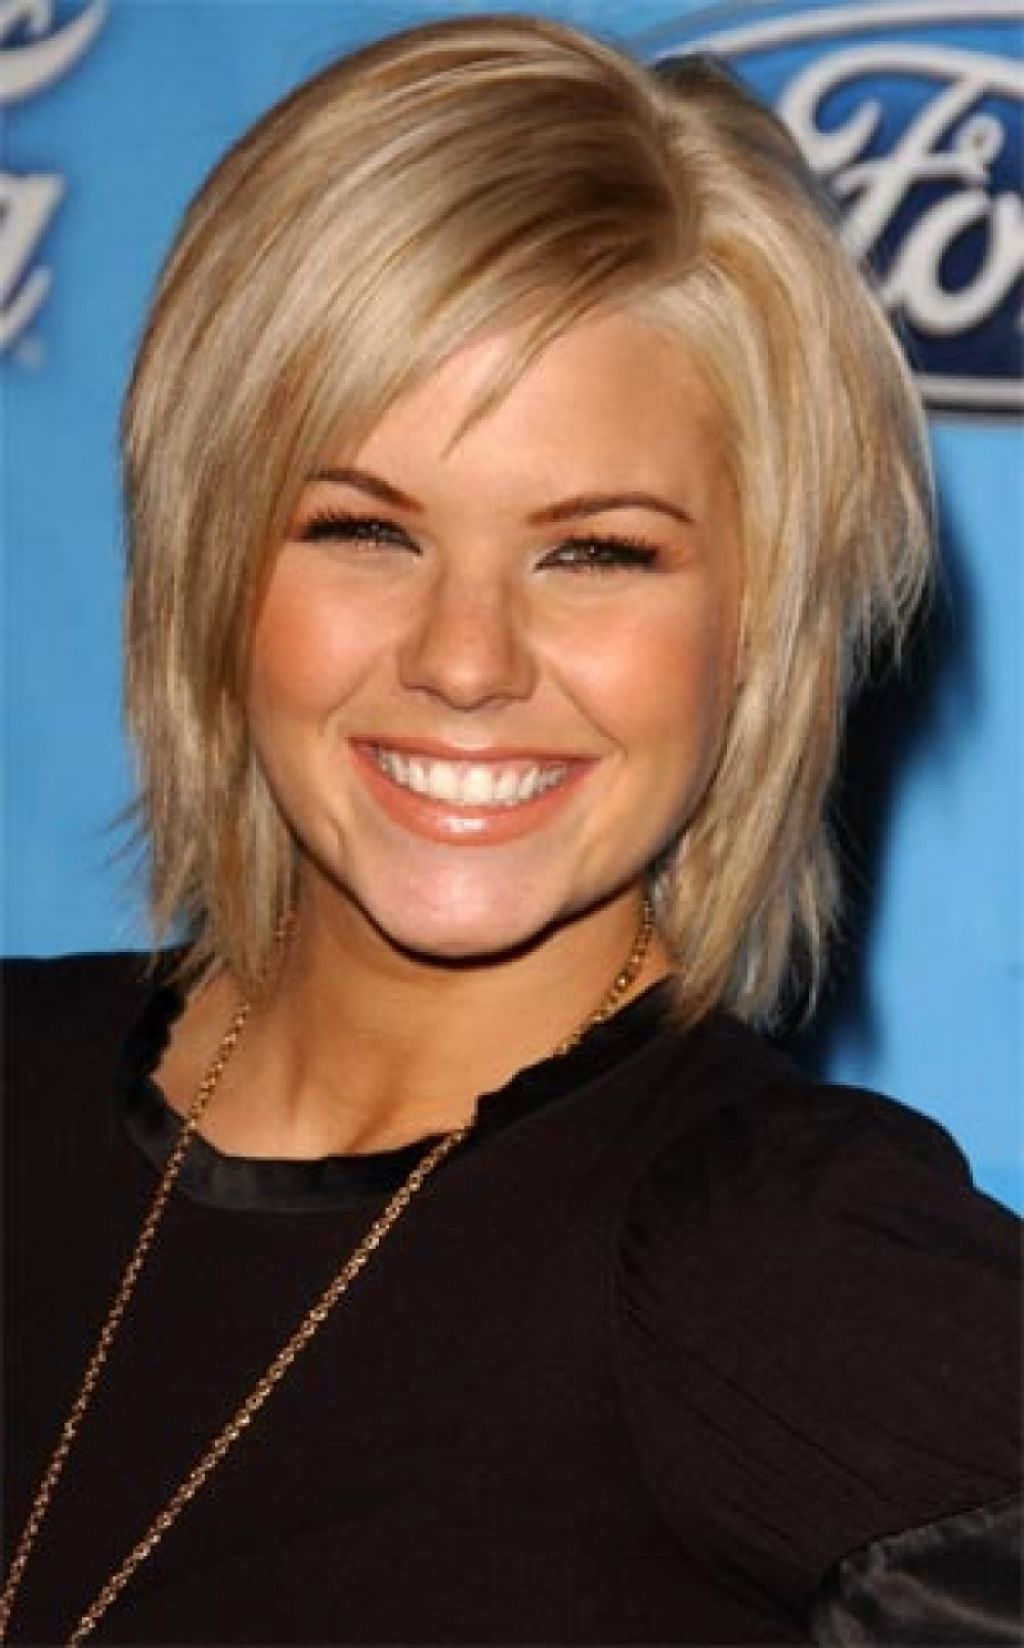 Current Wispy Medium Haircuts Intended For Medium Length Haircut Women – Hairstyle For Women & Man (View 5 of 20)